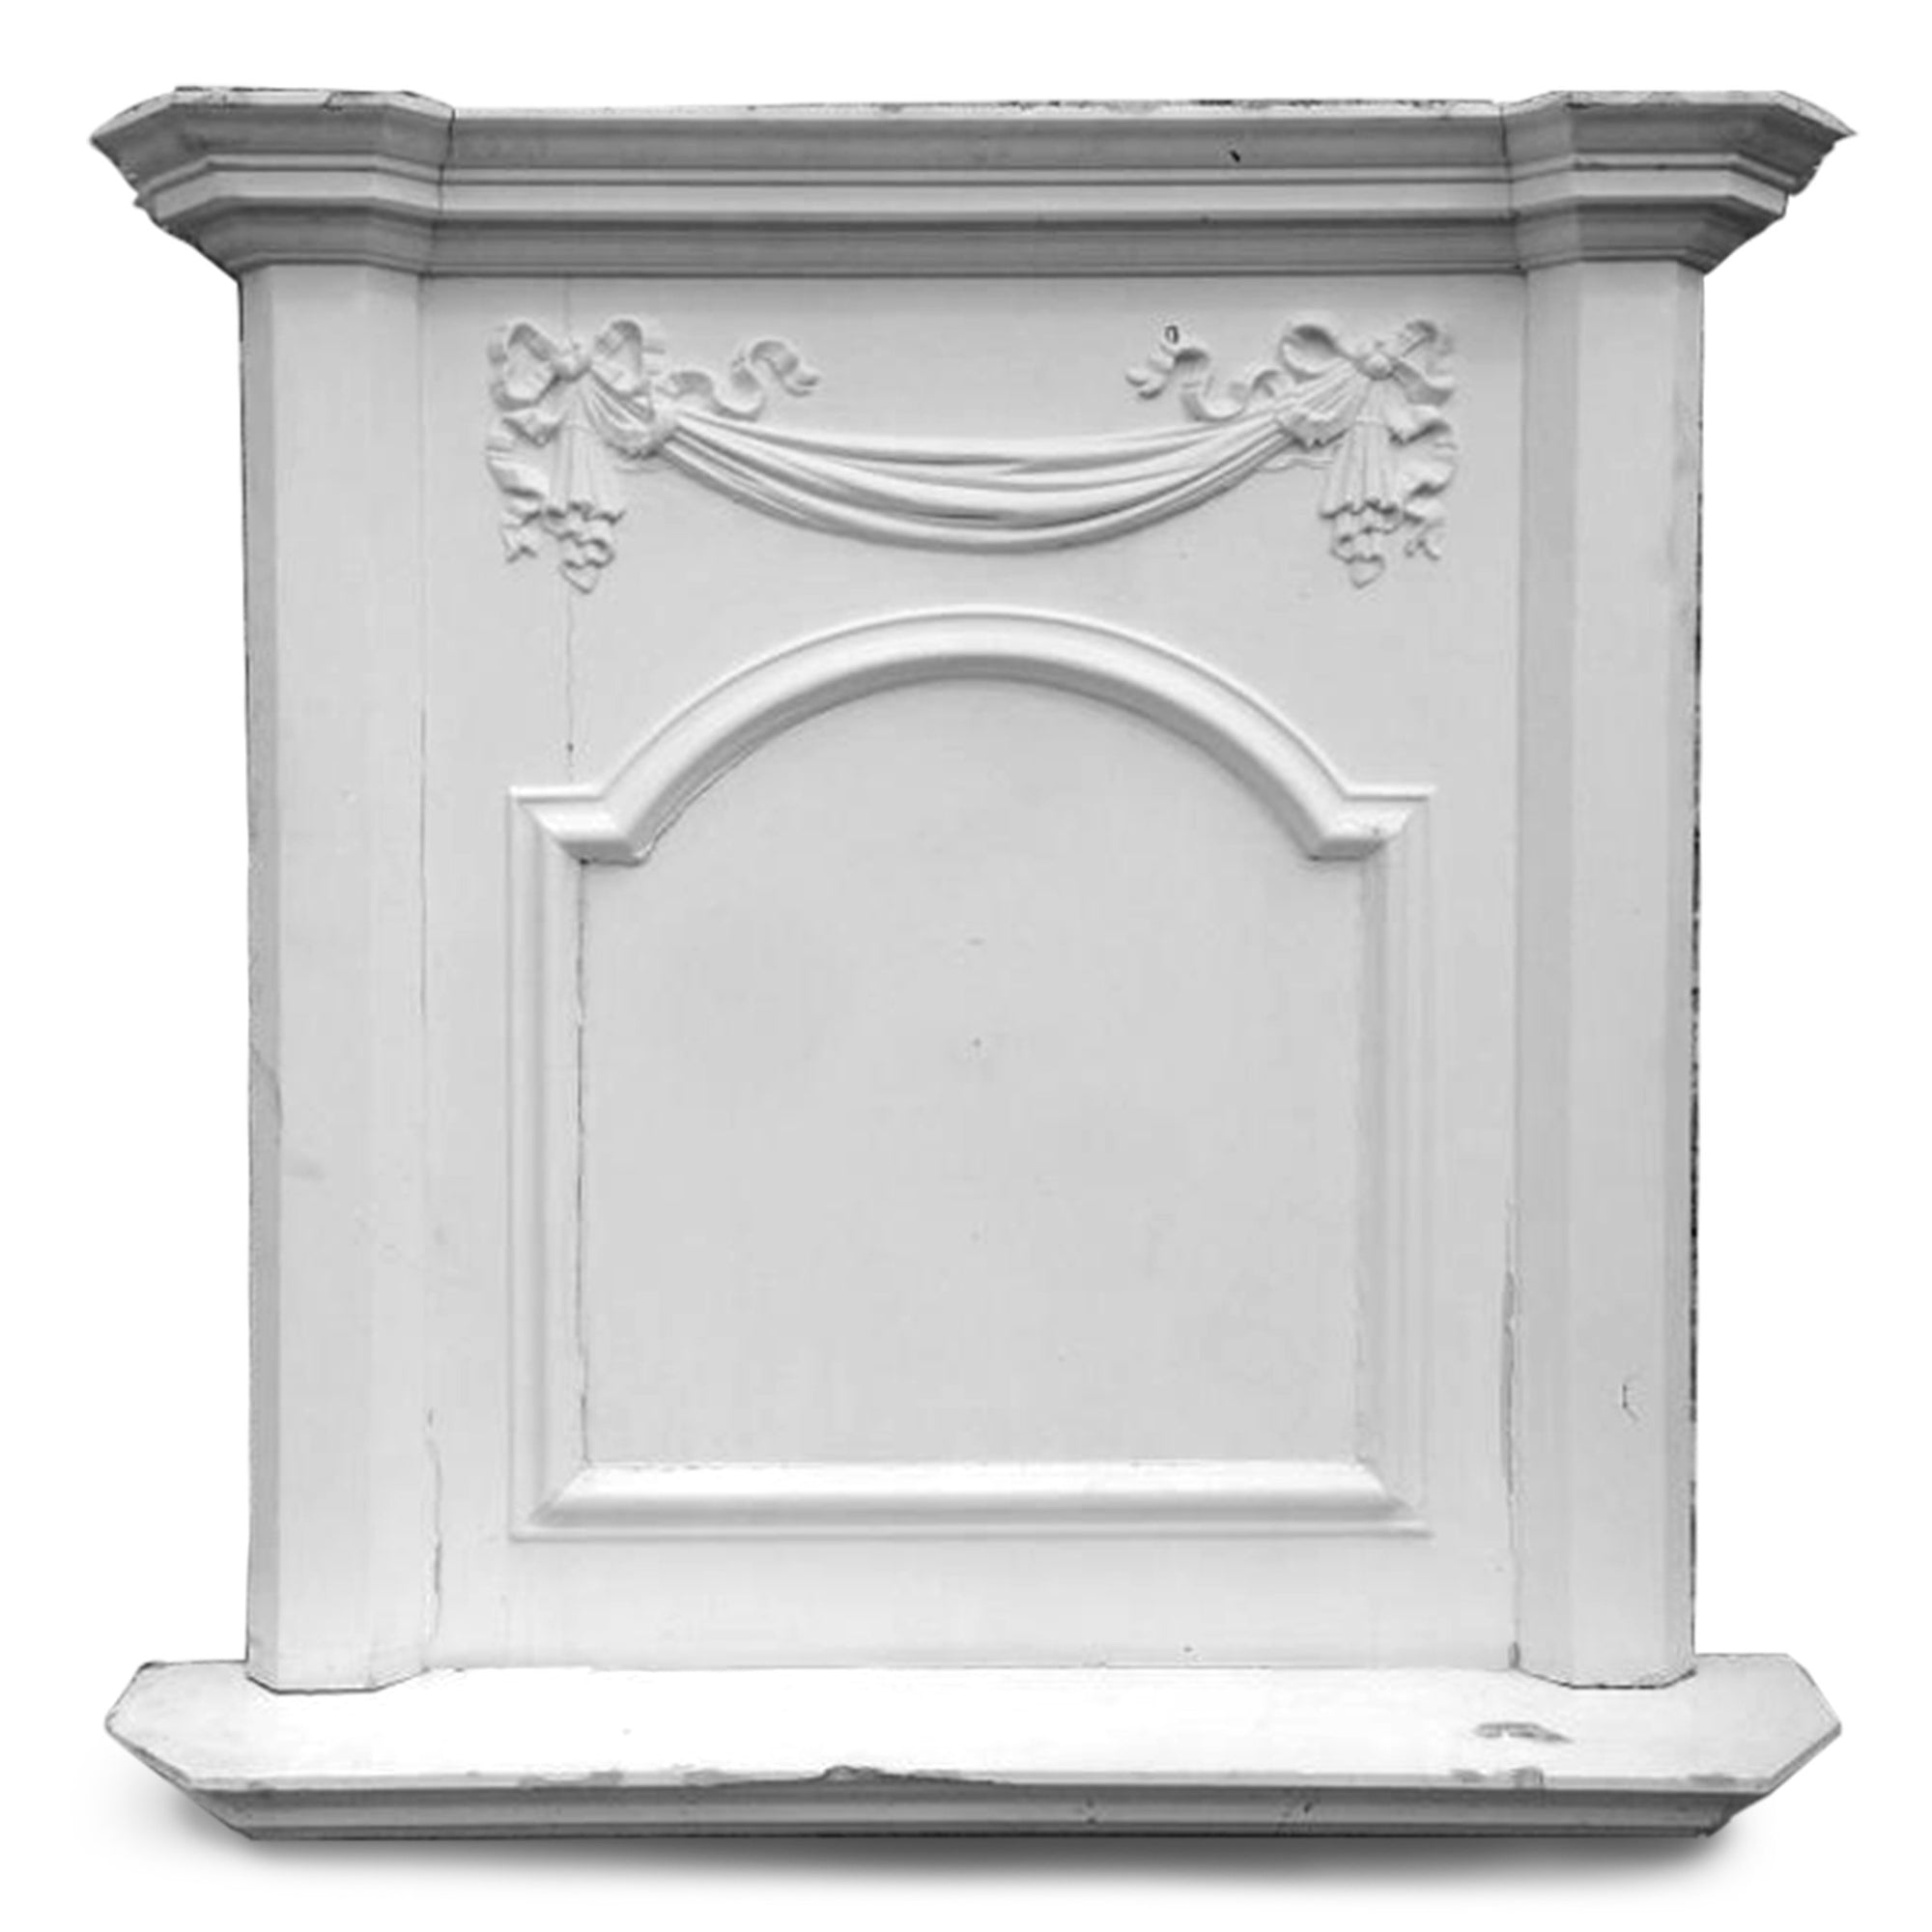 Antique Regency Fireplace Overmantle | The Architectural Forum